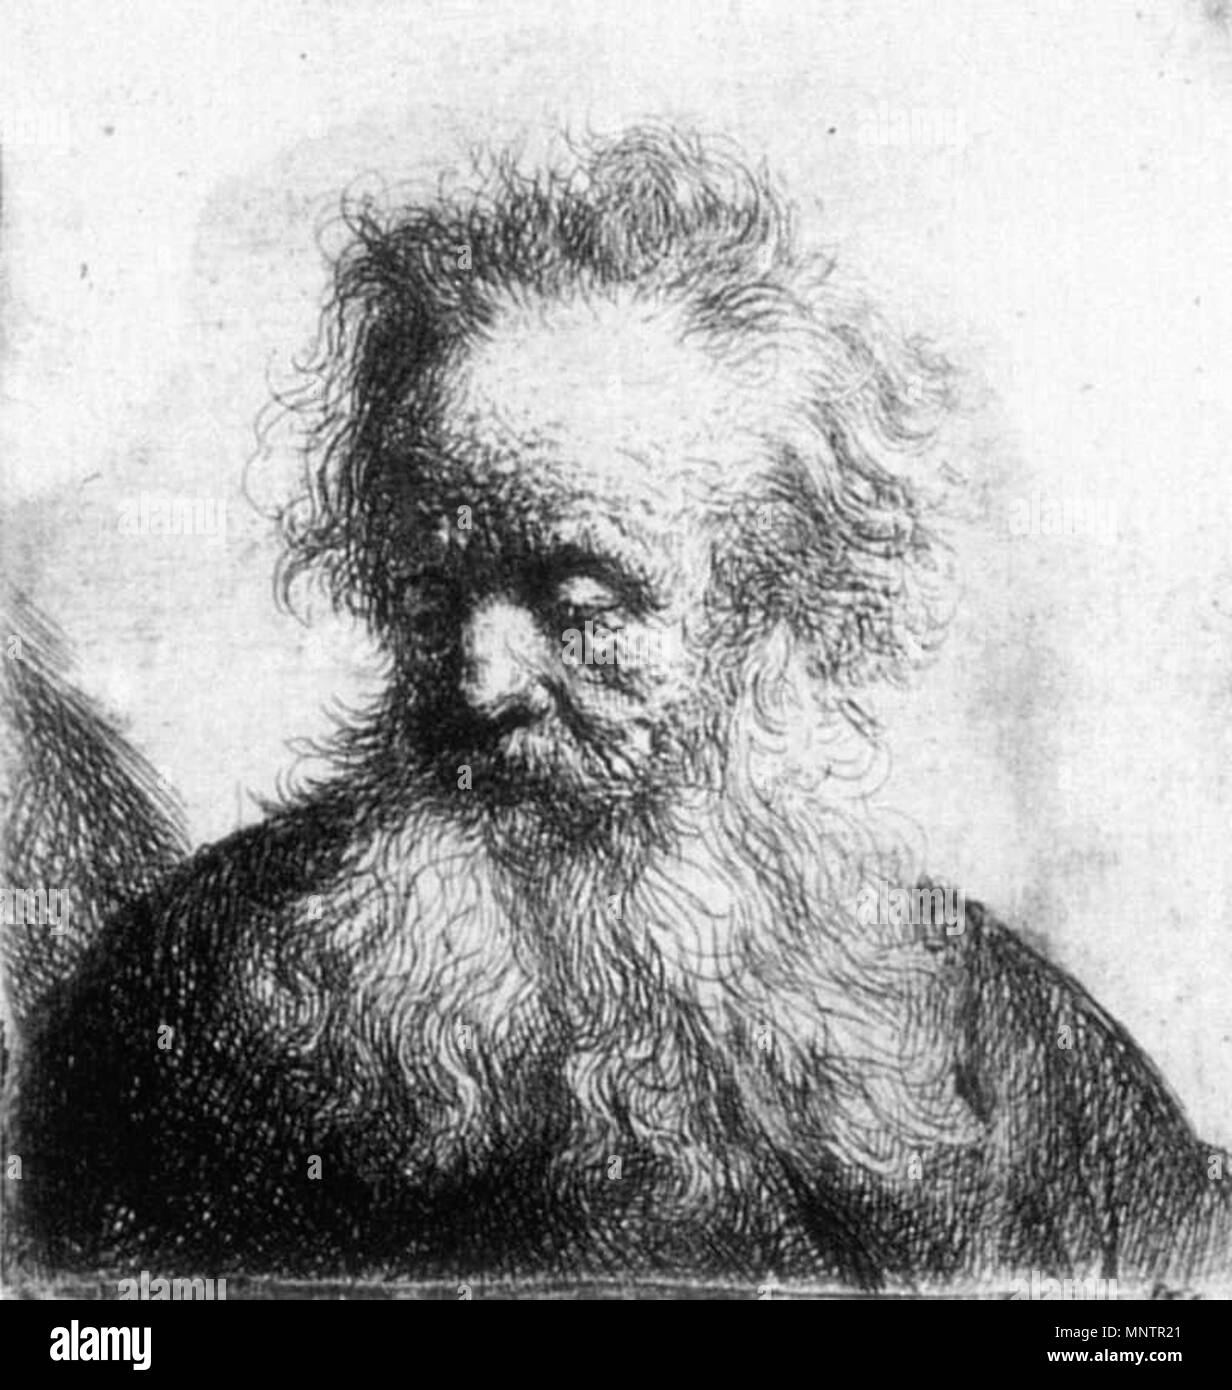 Old Man With Flowing Beard Looking Down Left 1631 1049 Rembrandt Old Man With Flowing Beard Looking Down Left Wga19072 Stock Photo Alamy